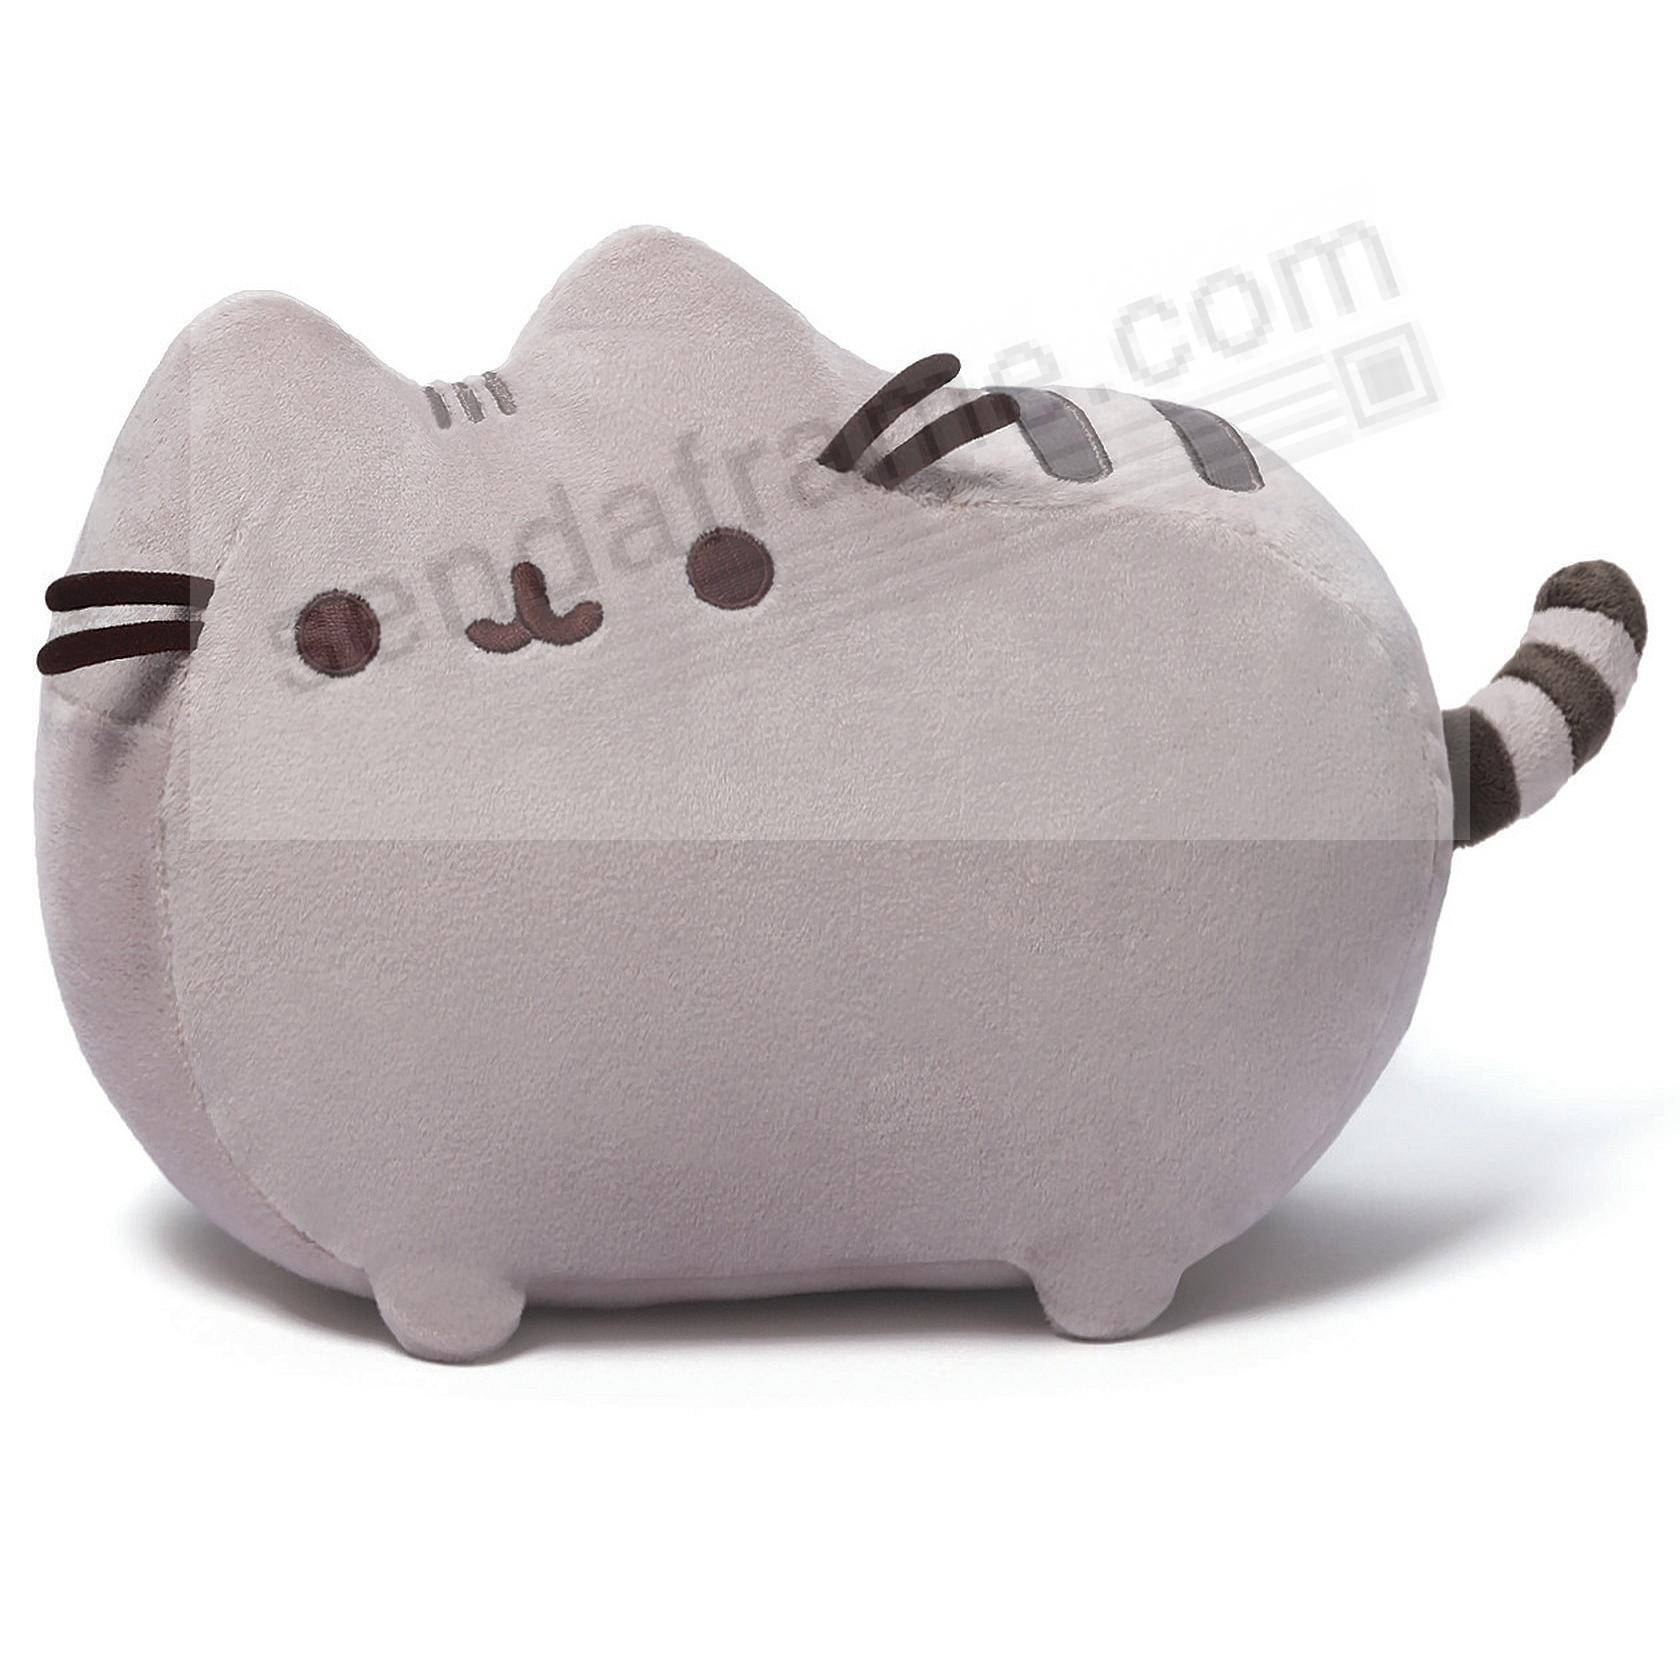 PUSHEEN® 12-inch Plush Cat by Gund®